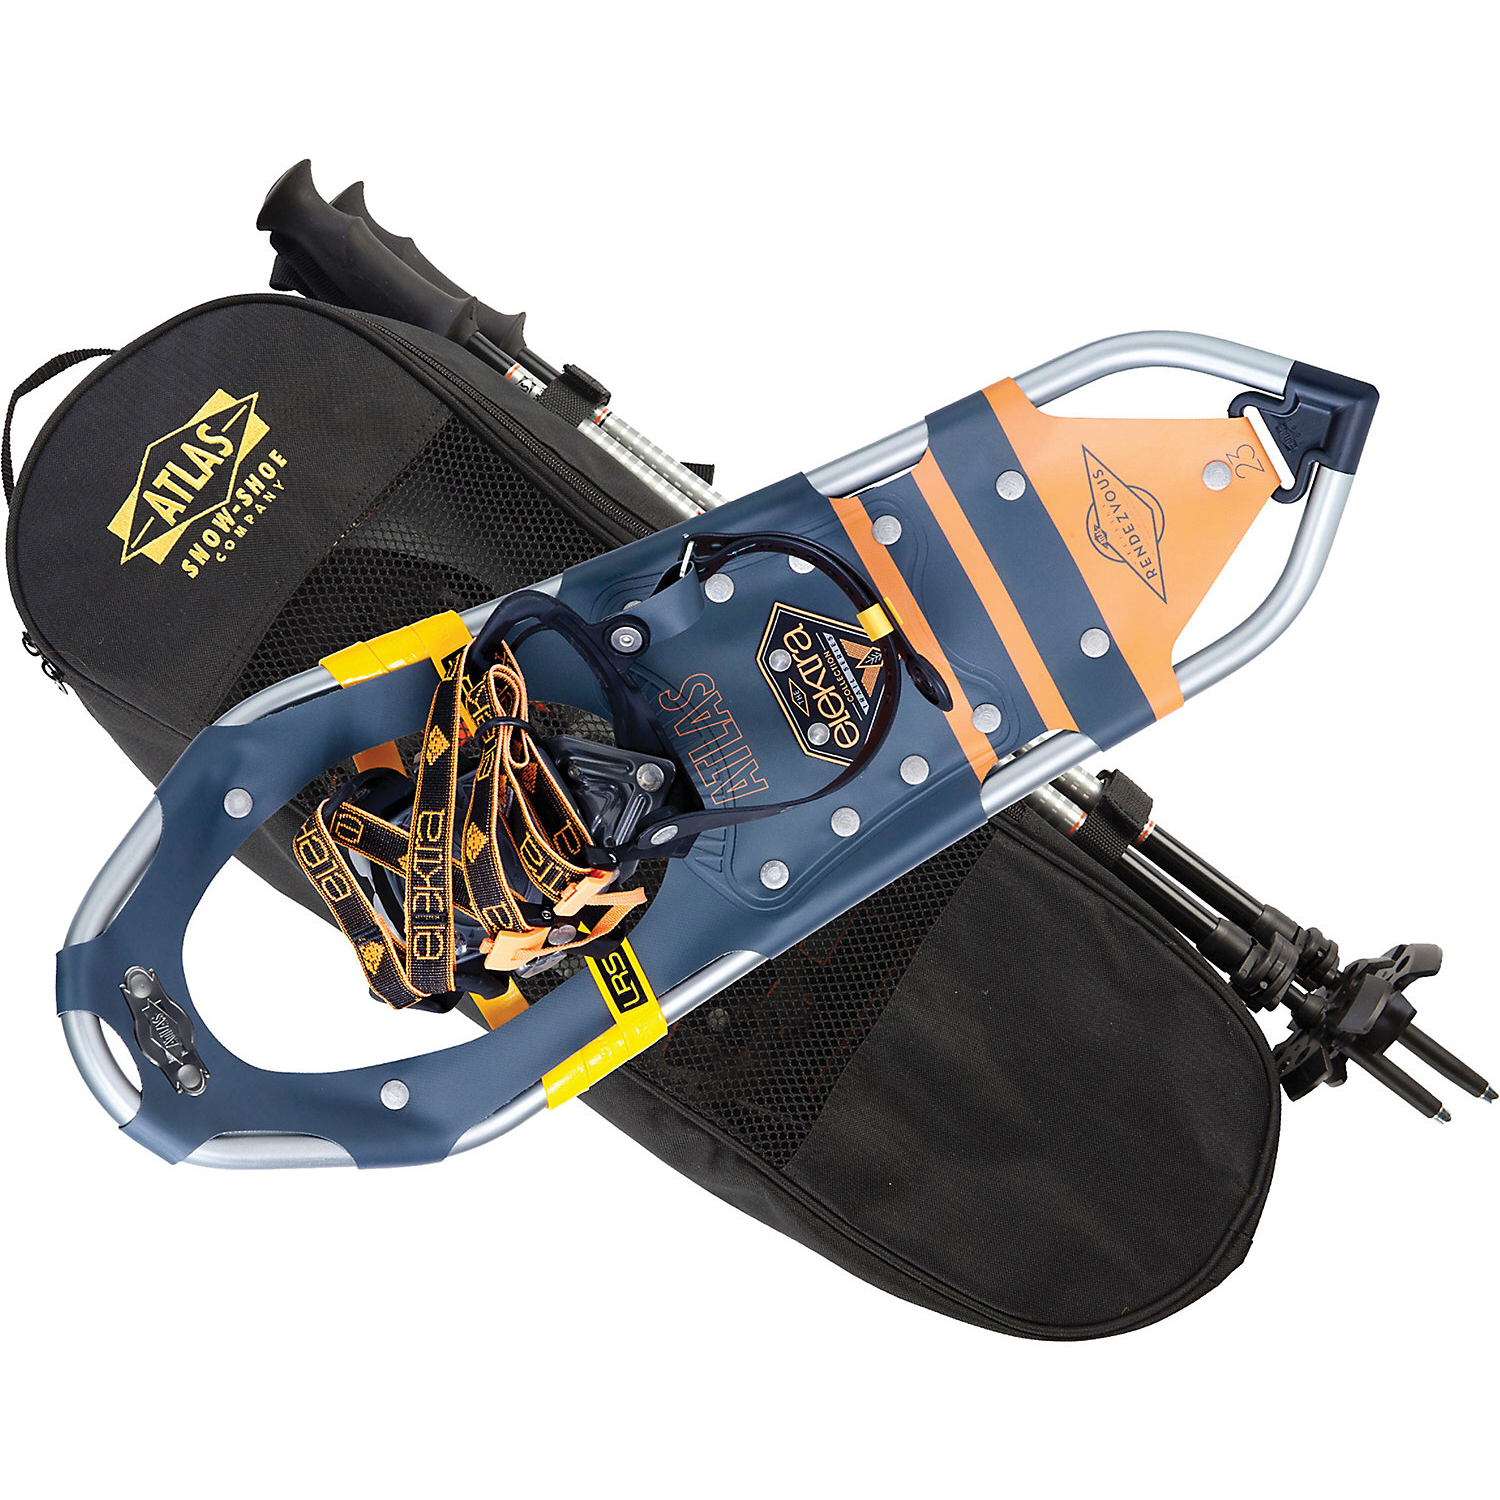 Demo Snowshoe Atlas Rendezvous Kit Image